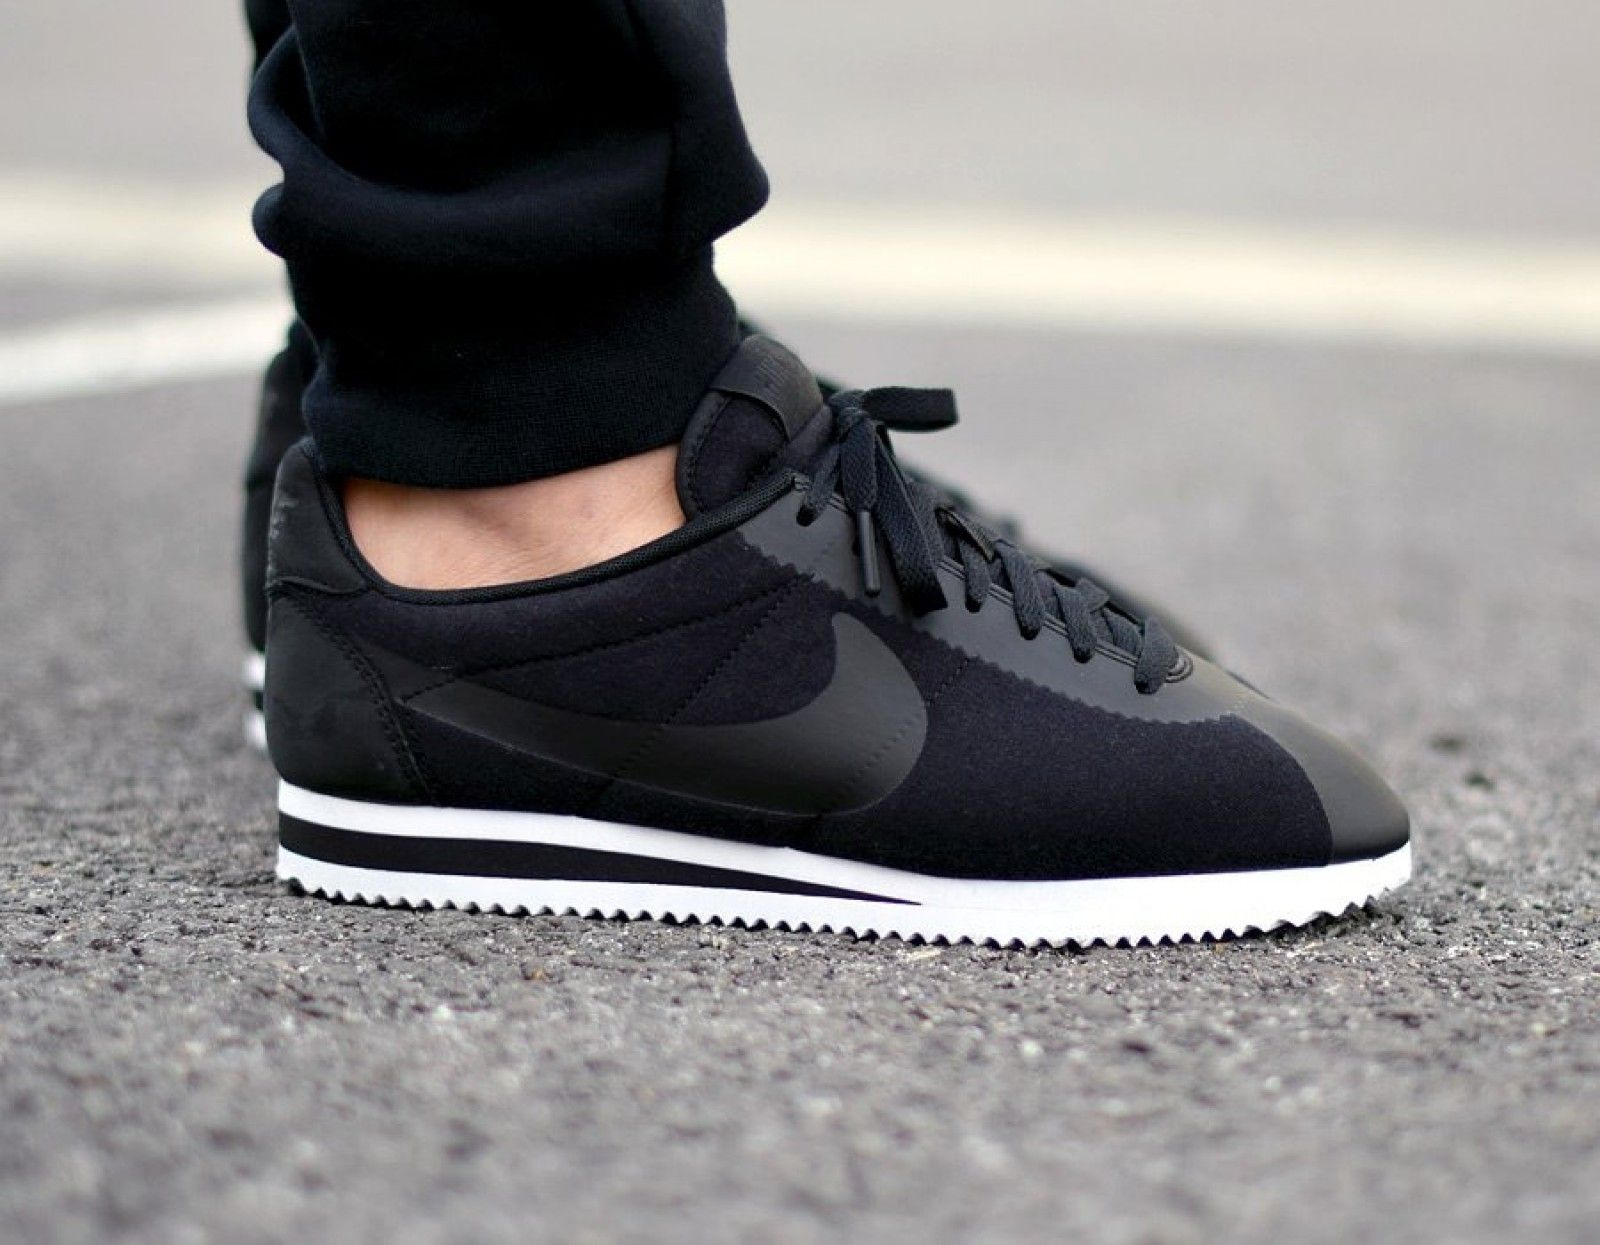 check out 30a07 ea5c0 Nike Classic Cortez TP Black-Black - 749654-001 | Shoes in ...